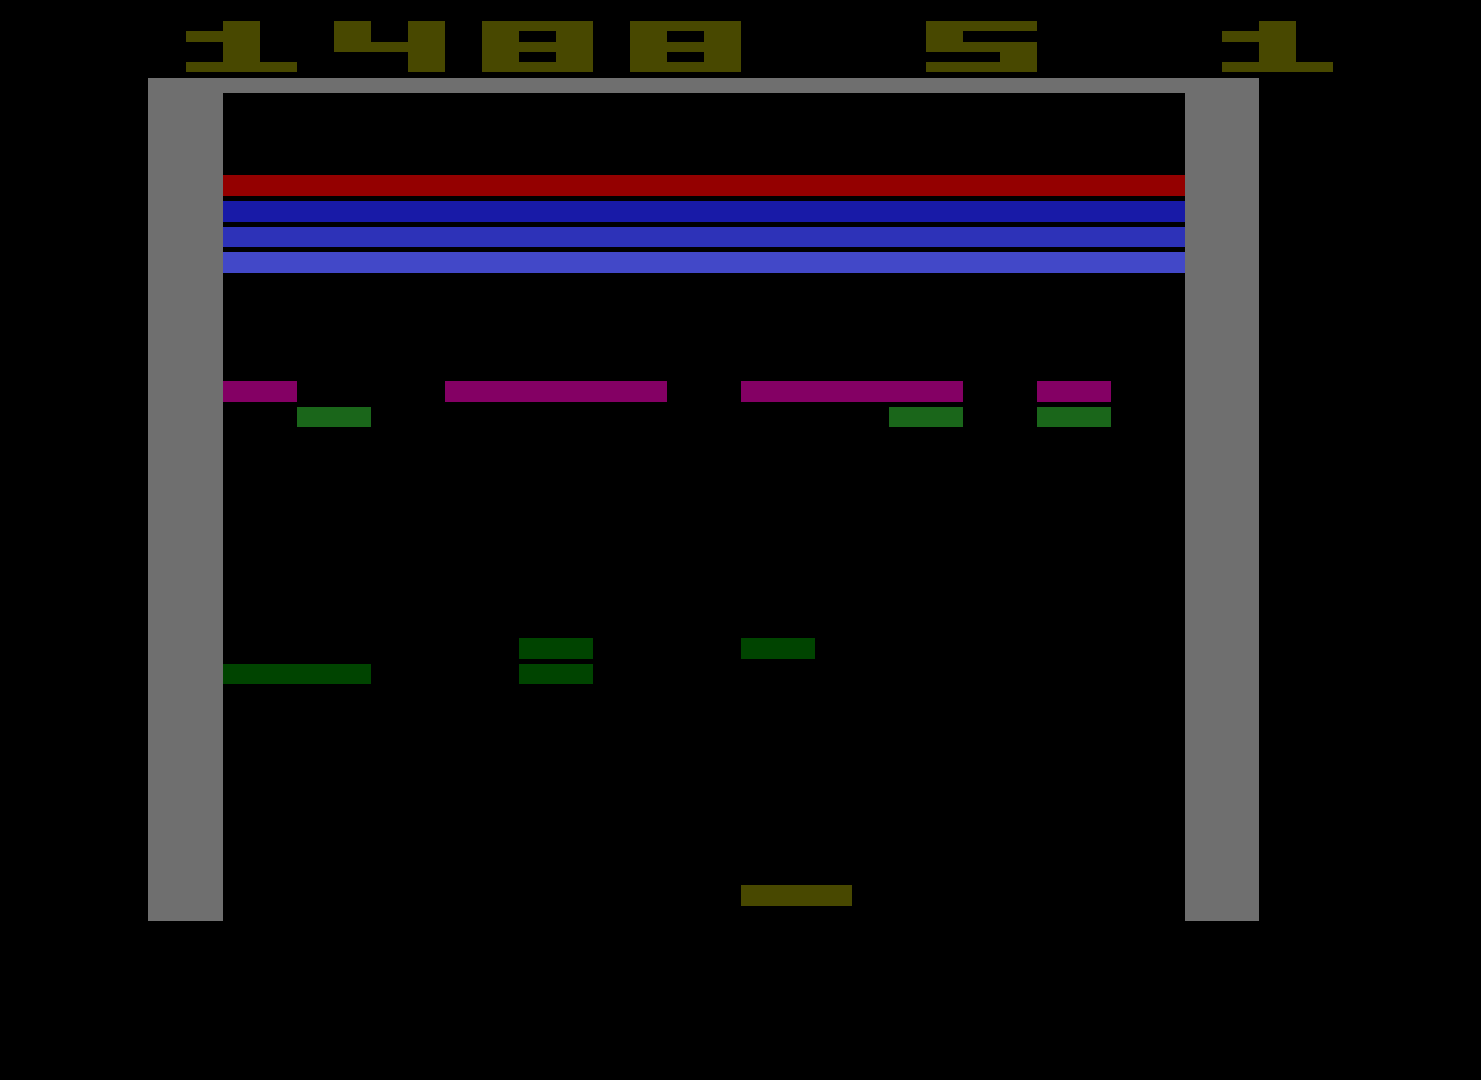 HexNash: Super Breakout: Game 7 (Atari 2600 Emulated Novice/B Mode) 1,488 points on 2013-10-26 14:44:54